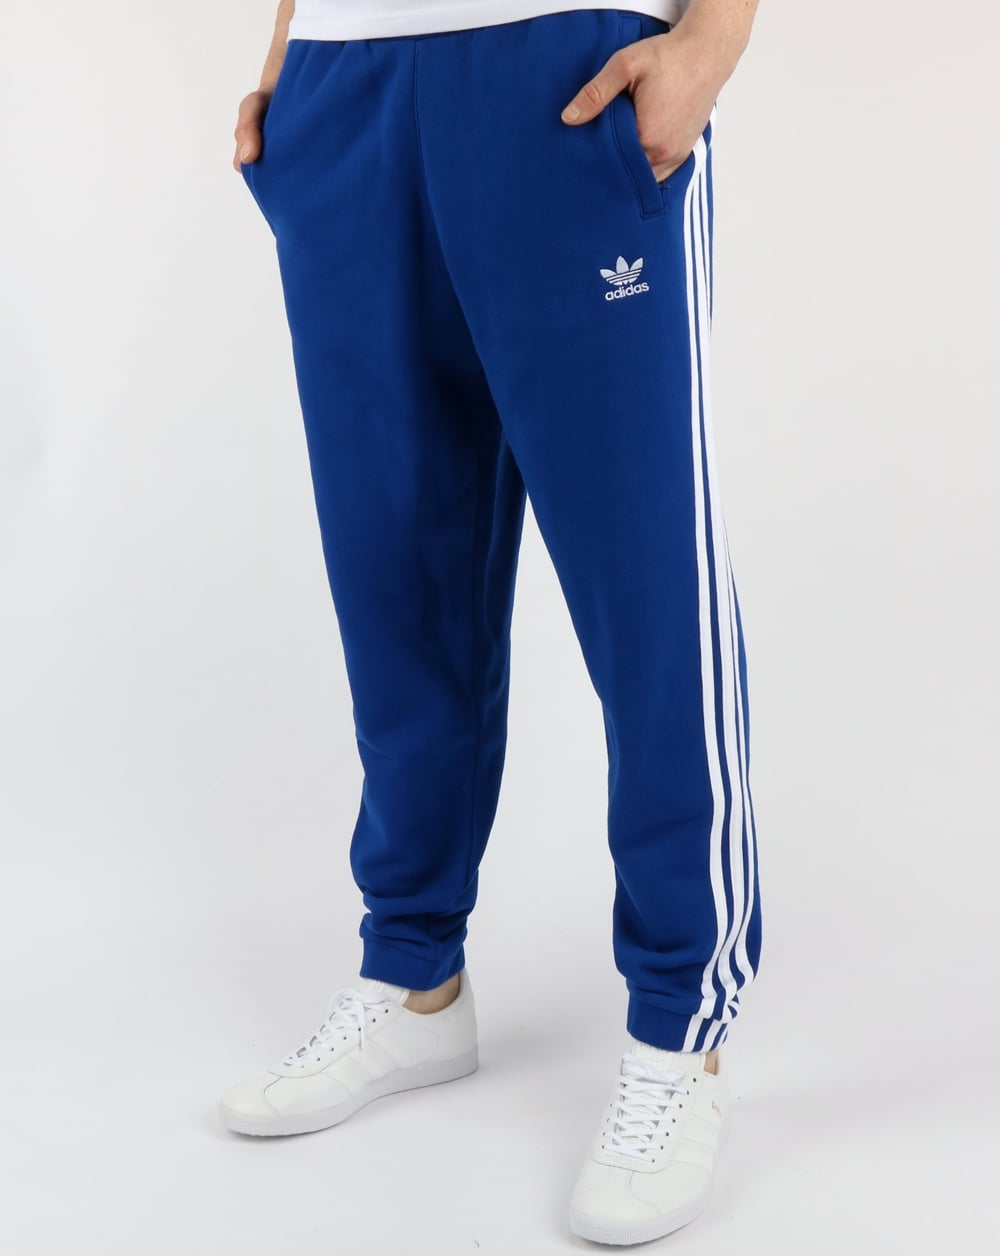 Adidas Originals 3 Stripes Track Pants Collegiate Royal